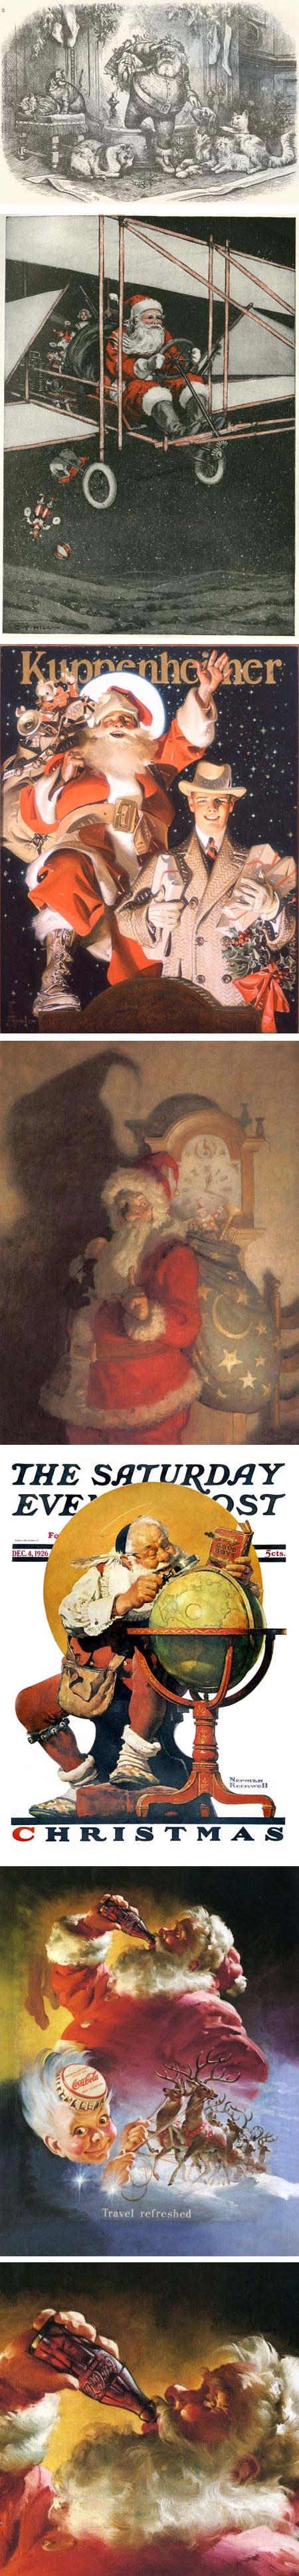 Illustrator's Visions of Santa Claus: Thomas Nast, Reginald Birch, J.C. Leyendecker, N.C. Wyeth, Norman Rockwell, Haddon Sundblom